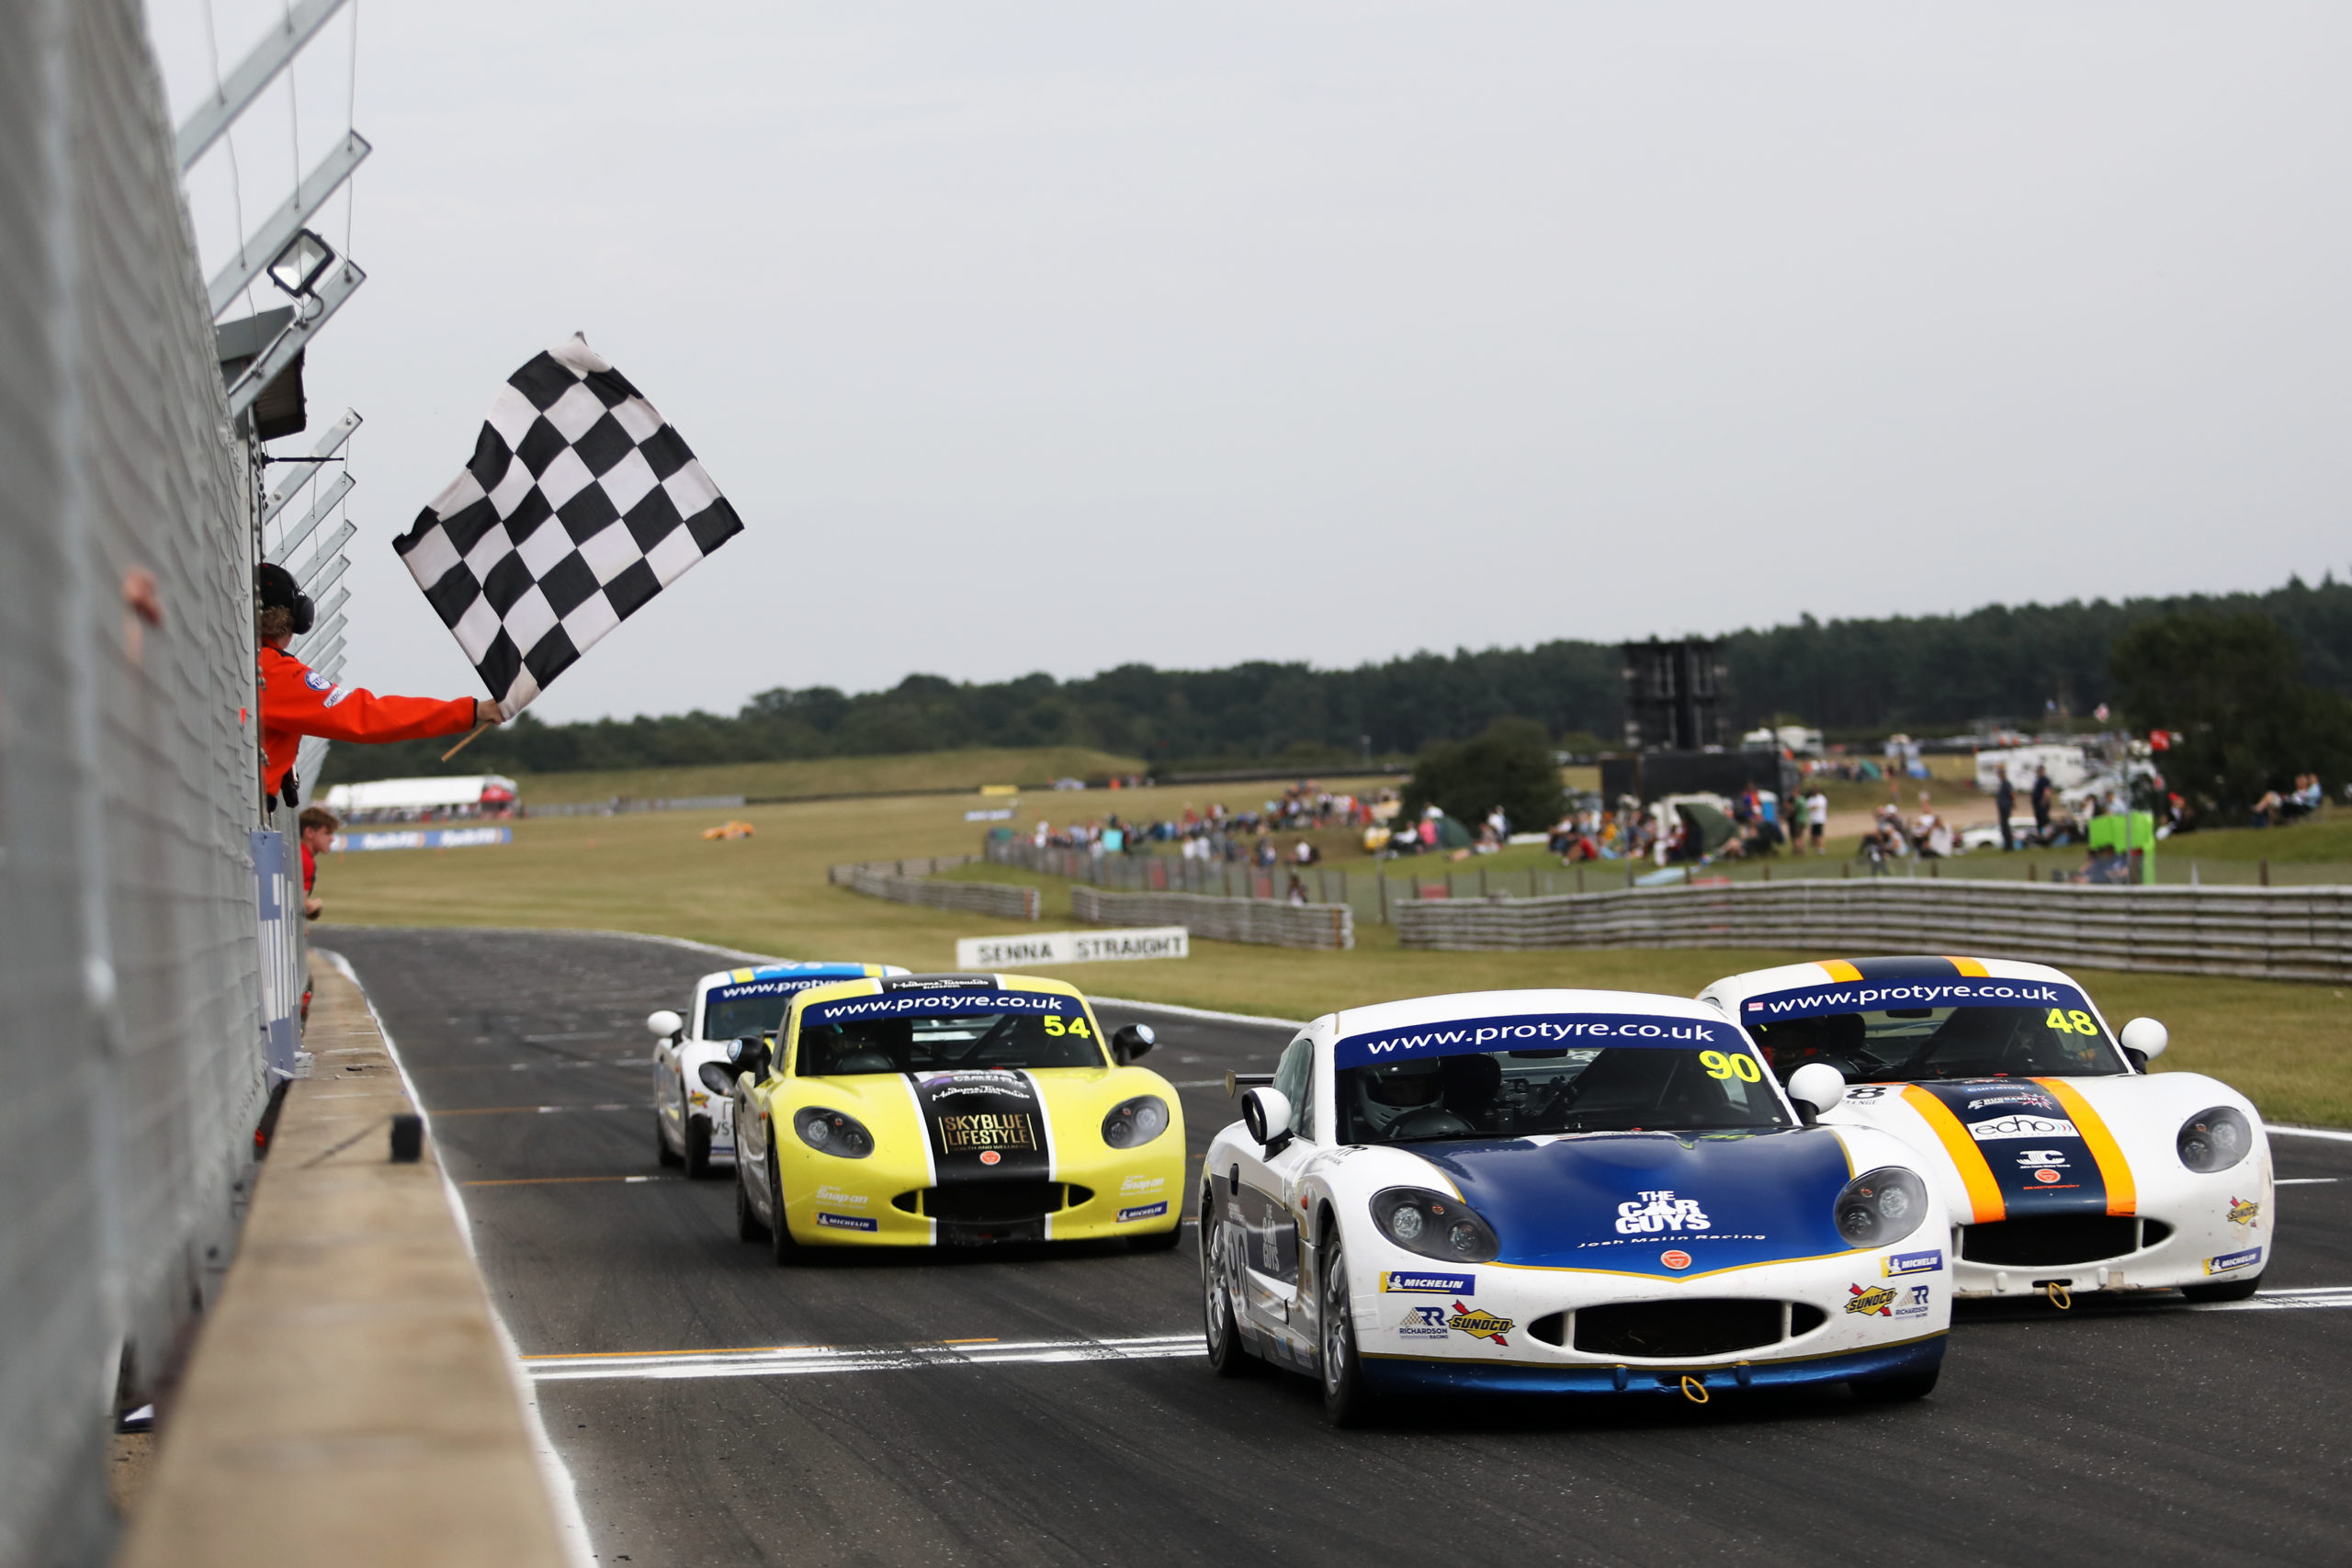 Richardson Racing target title success with multi-car Ginetta GT5 Challenge entry